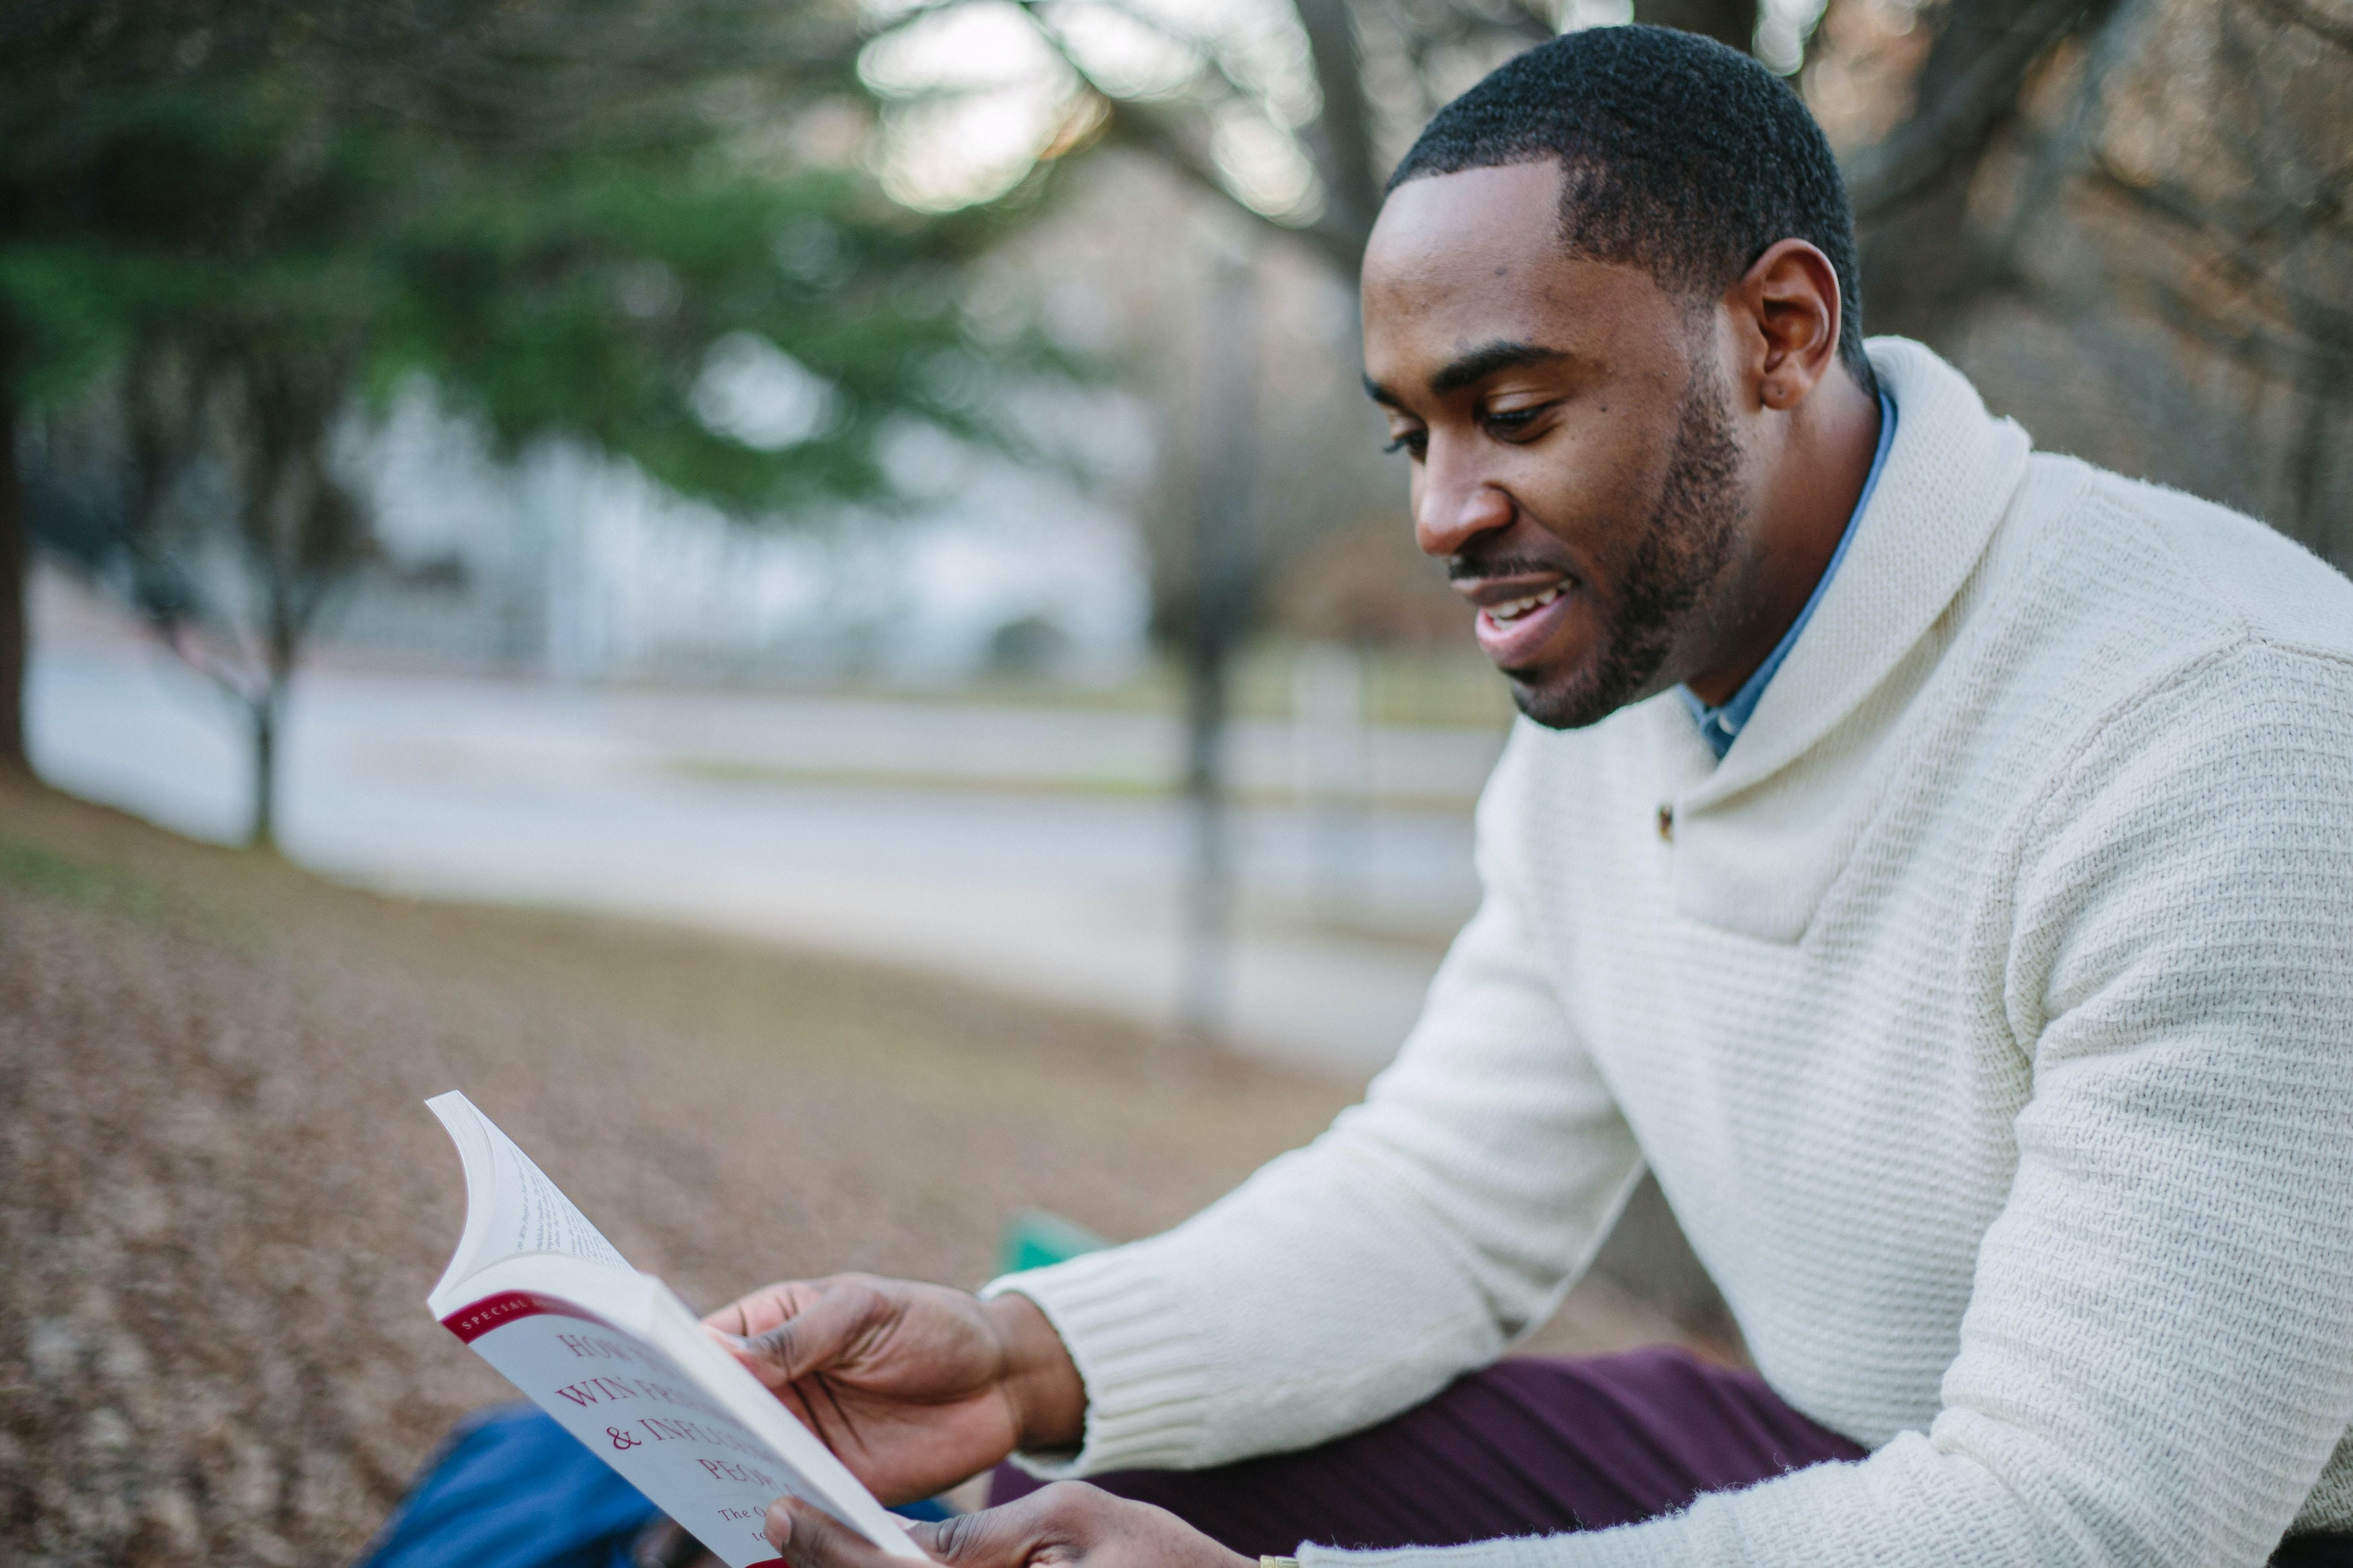 Essential Advice to Help Black Students Get Into Competitive Colleges